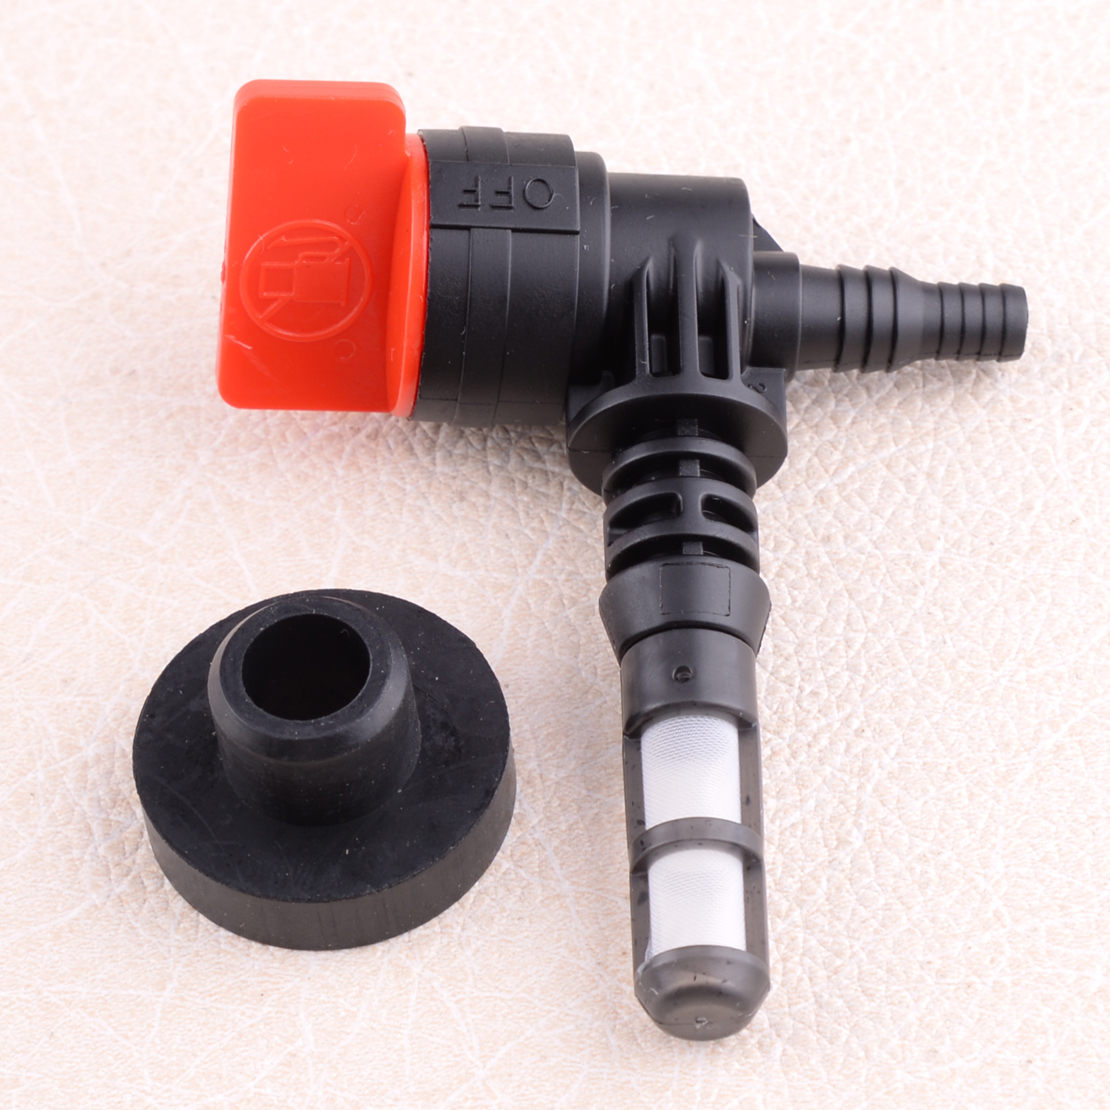 US $4 51 59% OFF LETAOSK Shut Off Valve Gas Fuel Grommet Filter Tanks Fit  for Briggs&Stratton 80270GS 80270 78299 192980GS 208961 Generator-in Tool